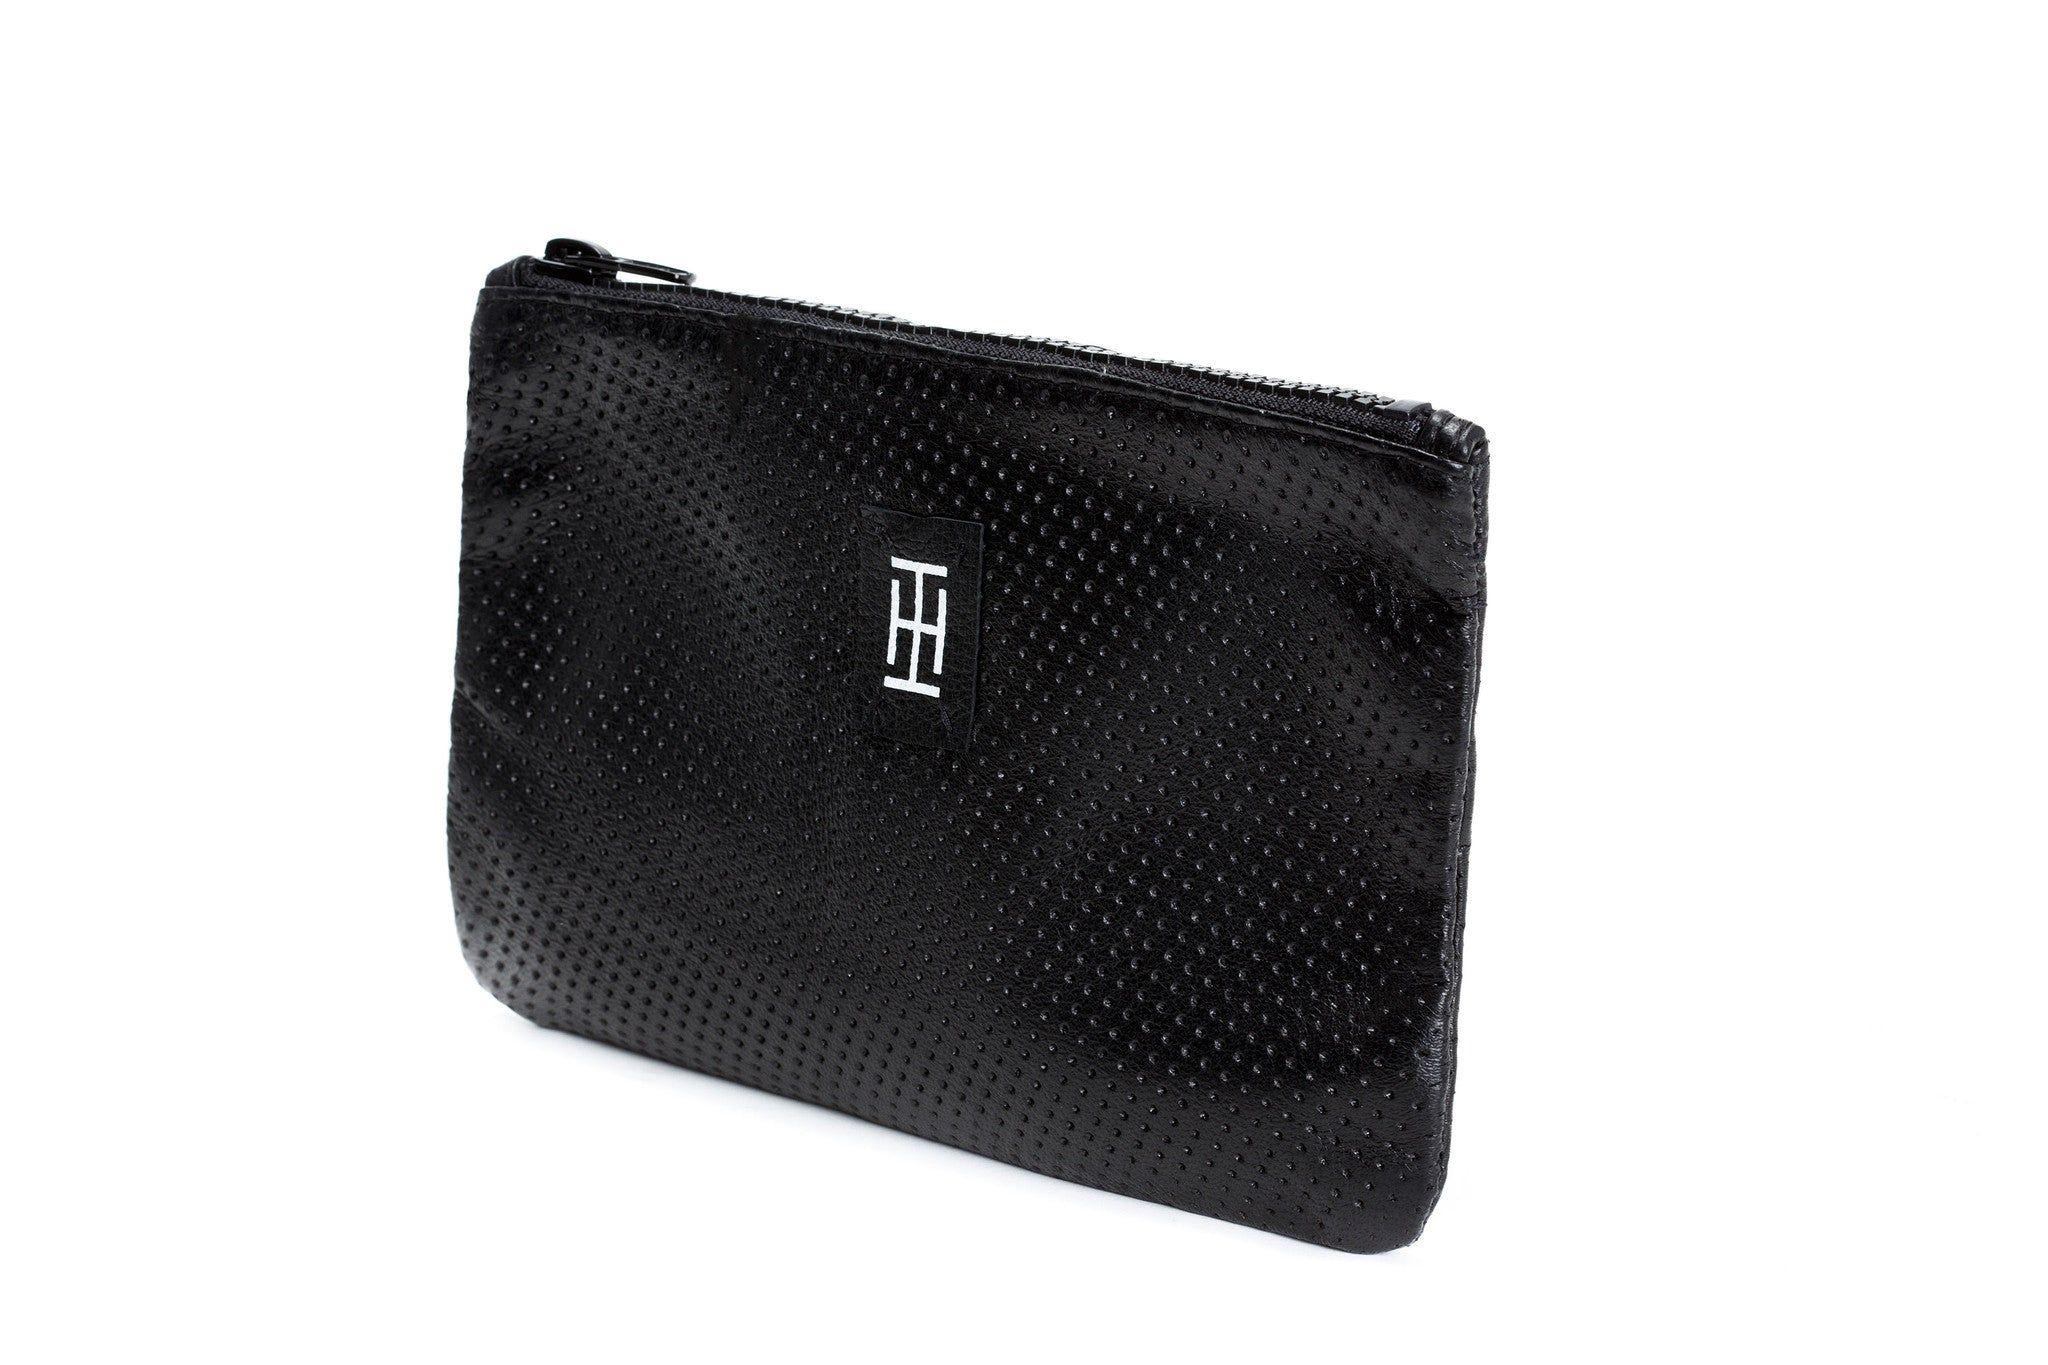 Black perforated-leather pouch, leather purse